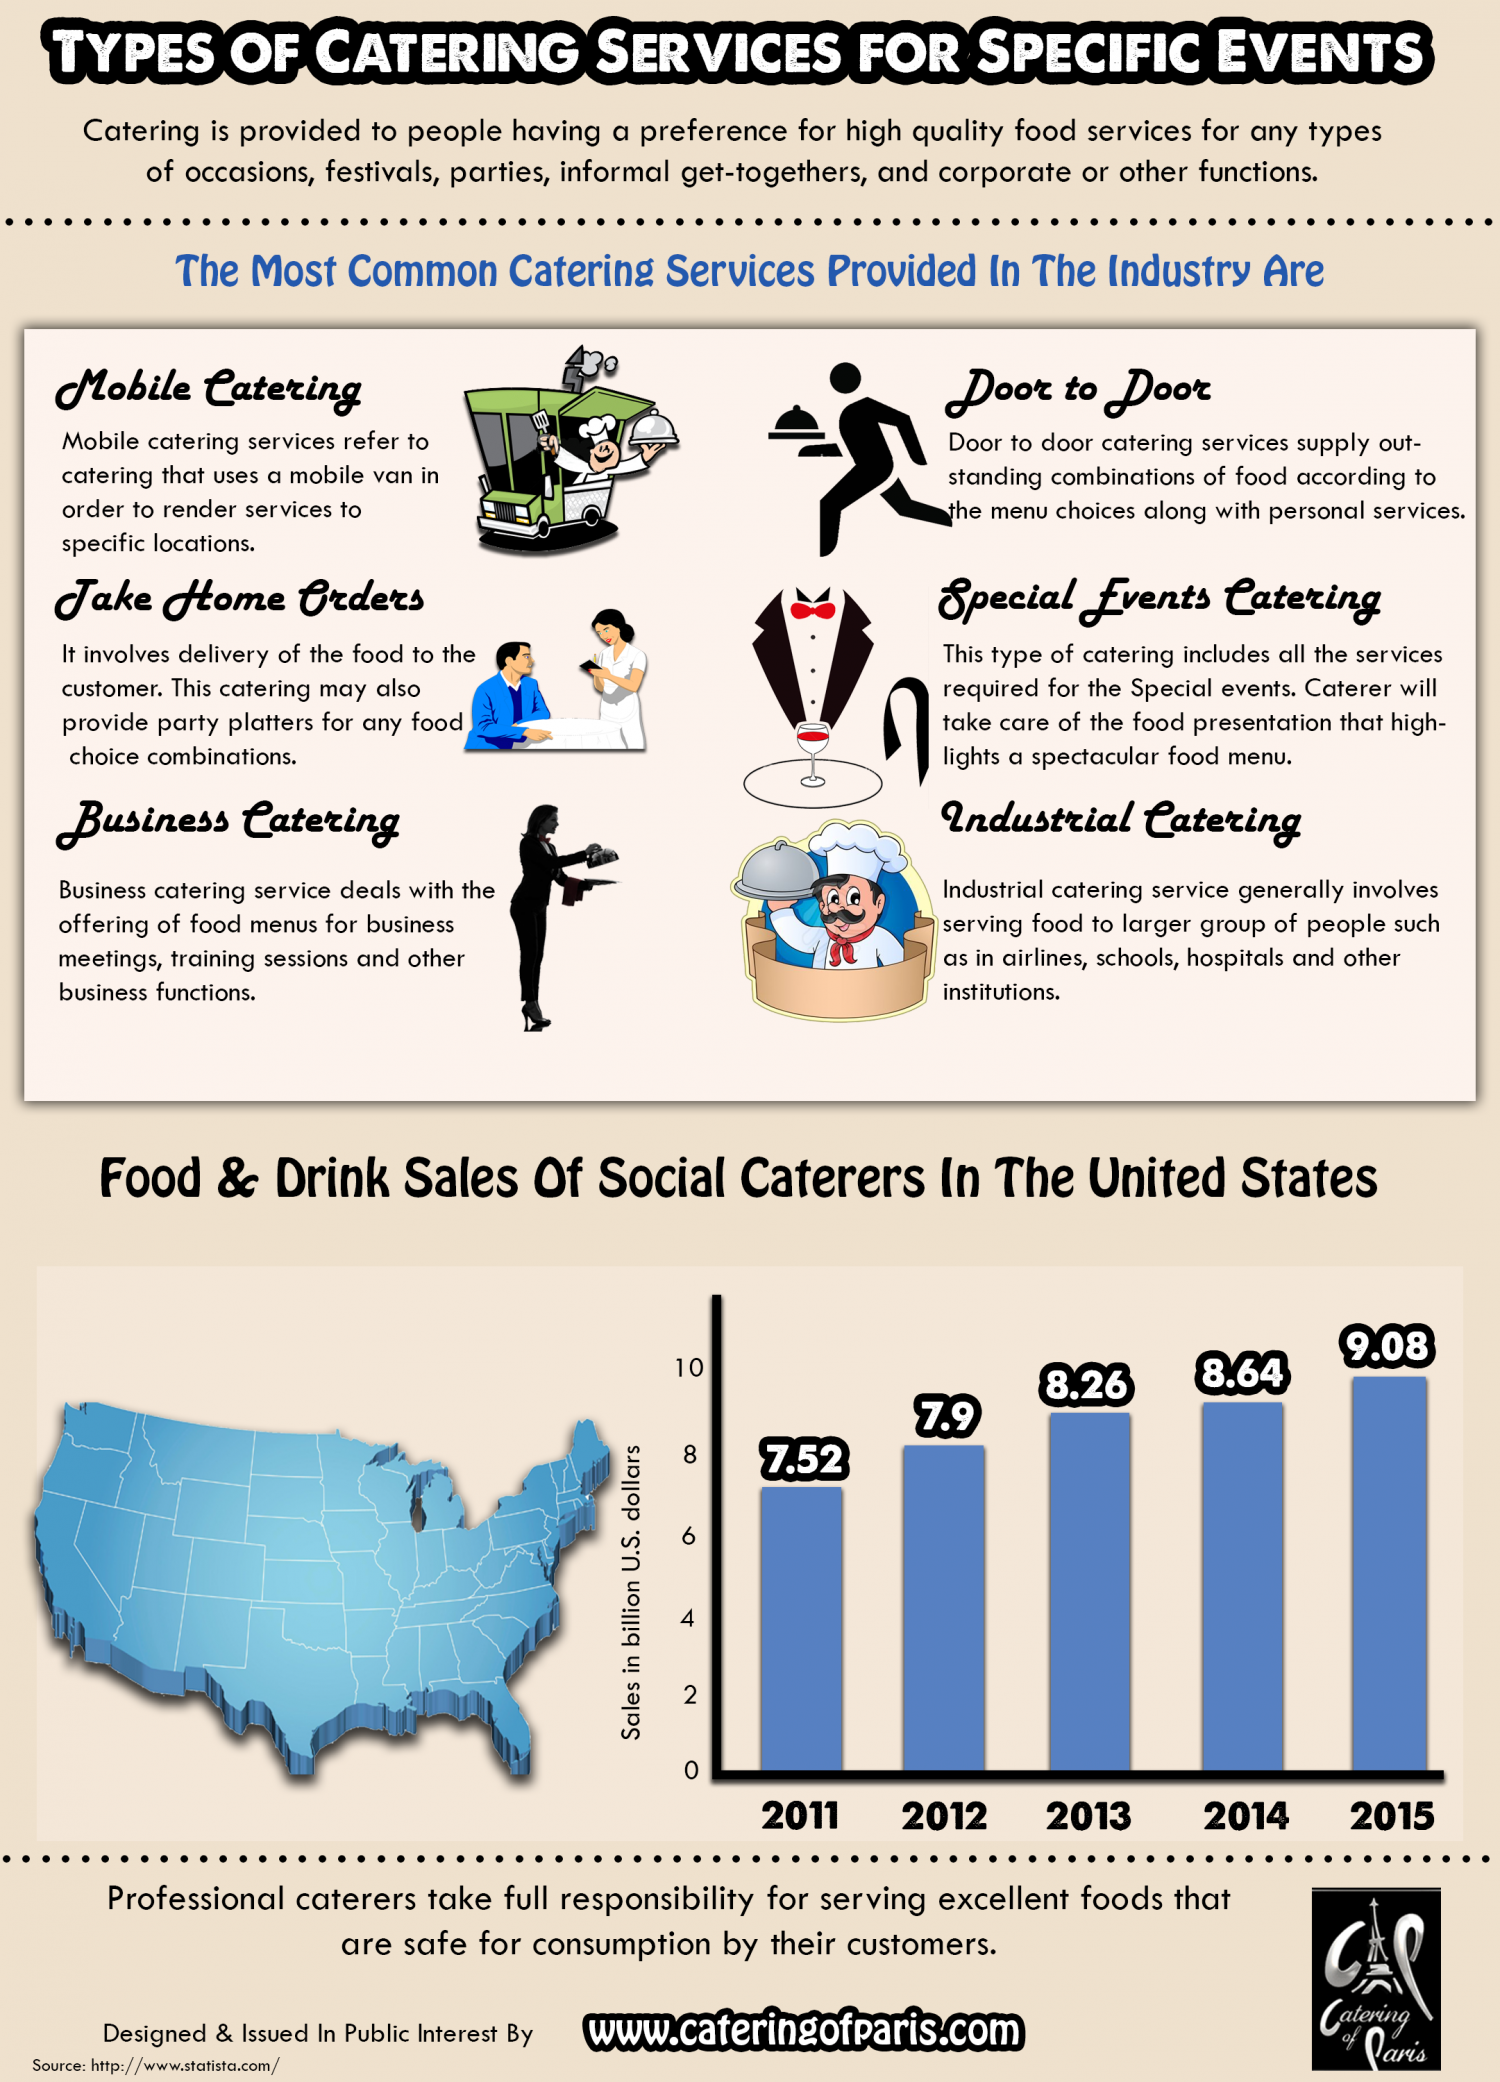 Types of Catering Services for Specific Events Infographic